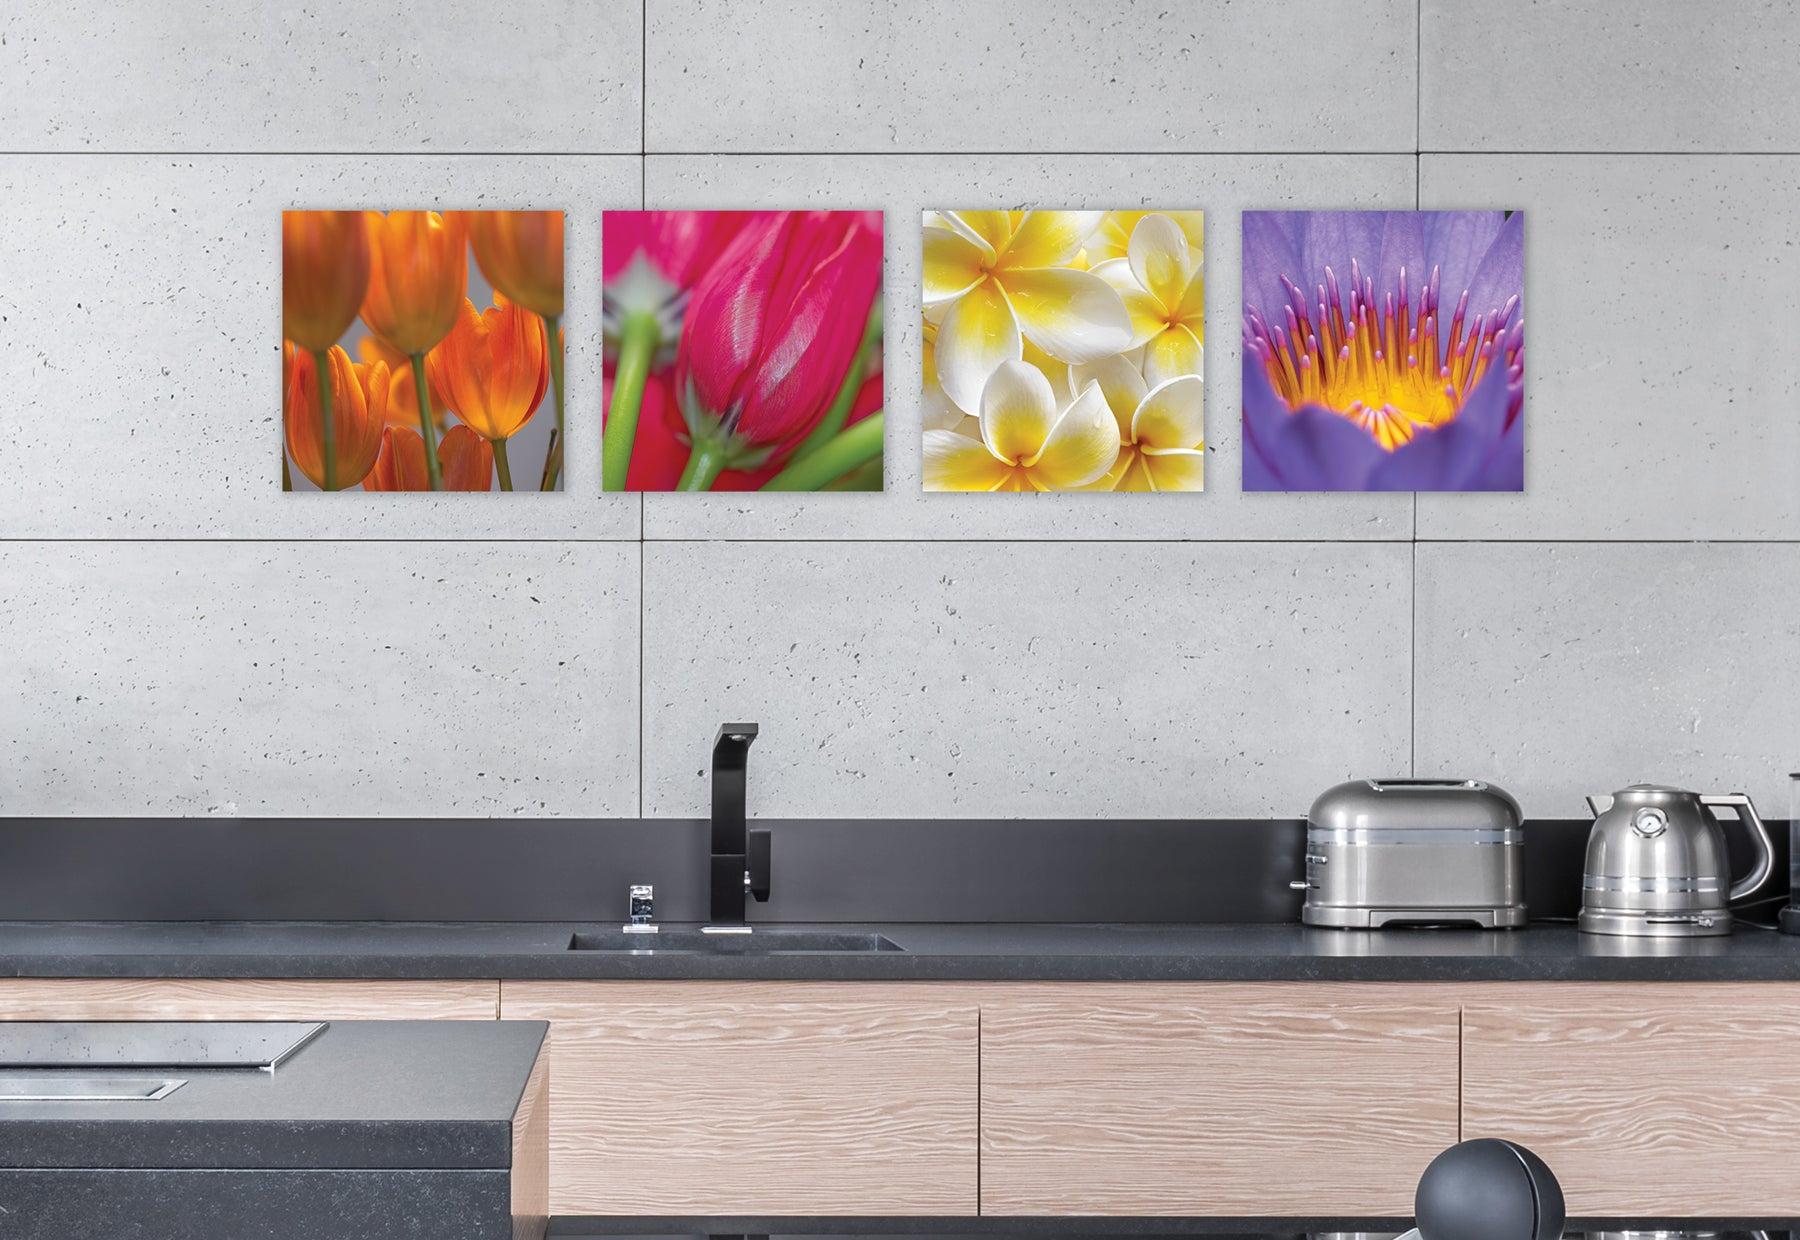 Sleek modern kitchen with light brown cabinets, dark gray countertops and concrete walls featuring four square photographs of colorful flowers by Peter Lik